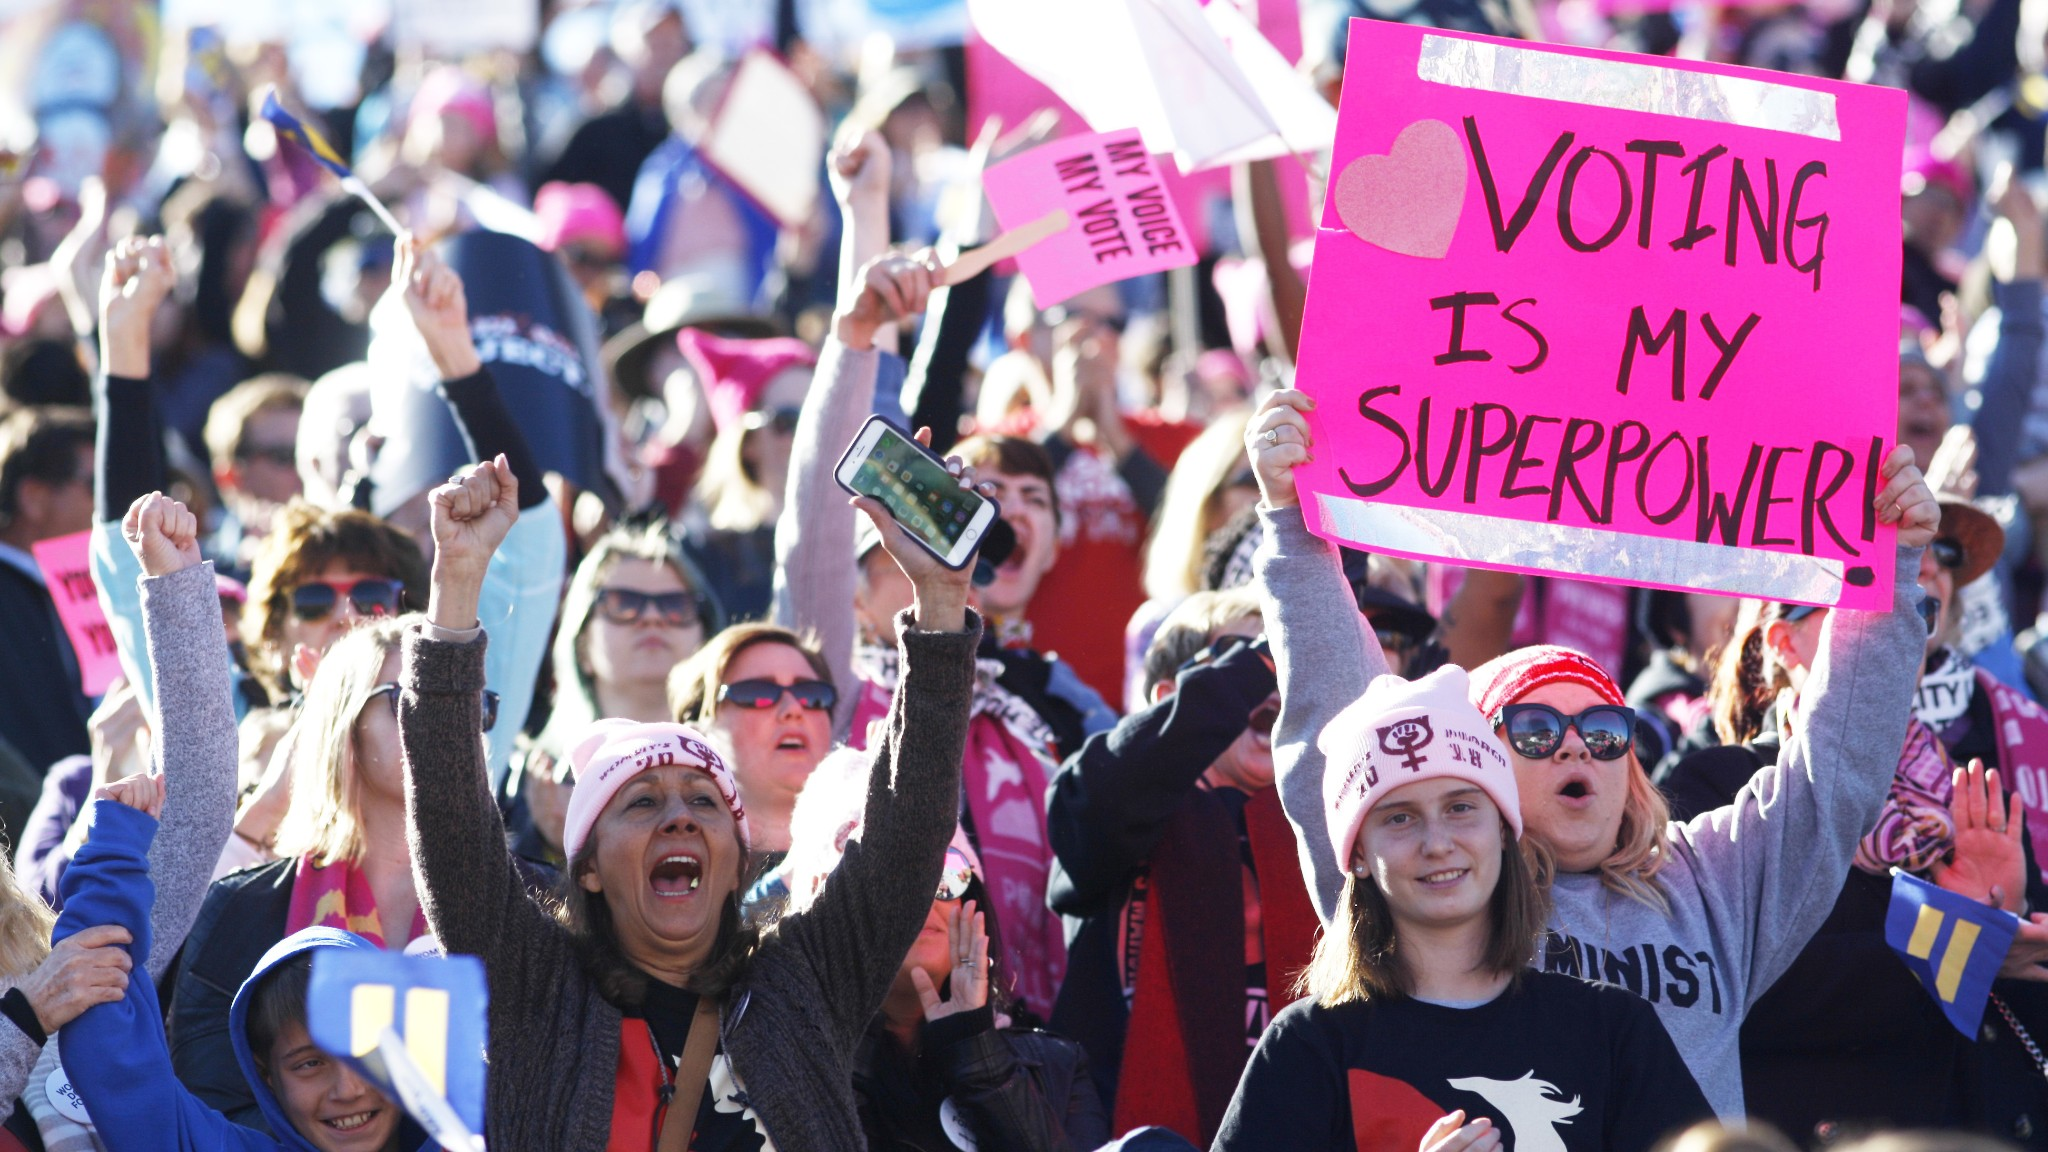 More Than Twice As Many Women Are Running For Congress In 2018 Compared To 2016